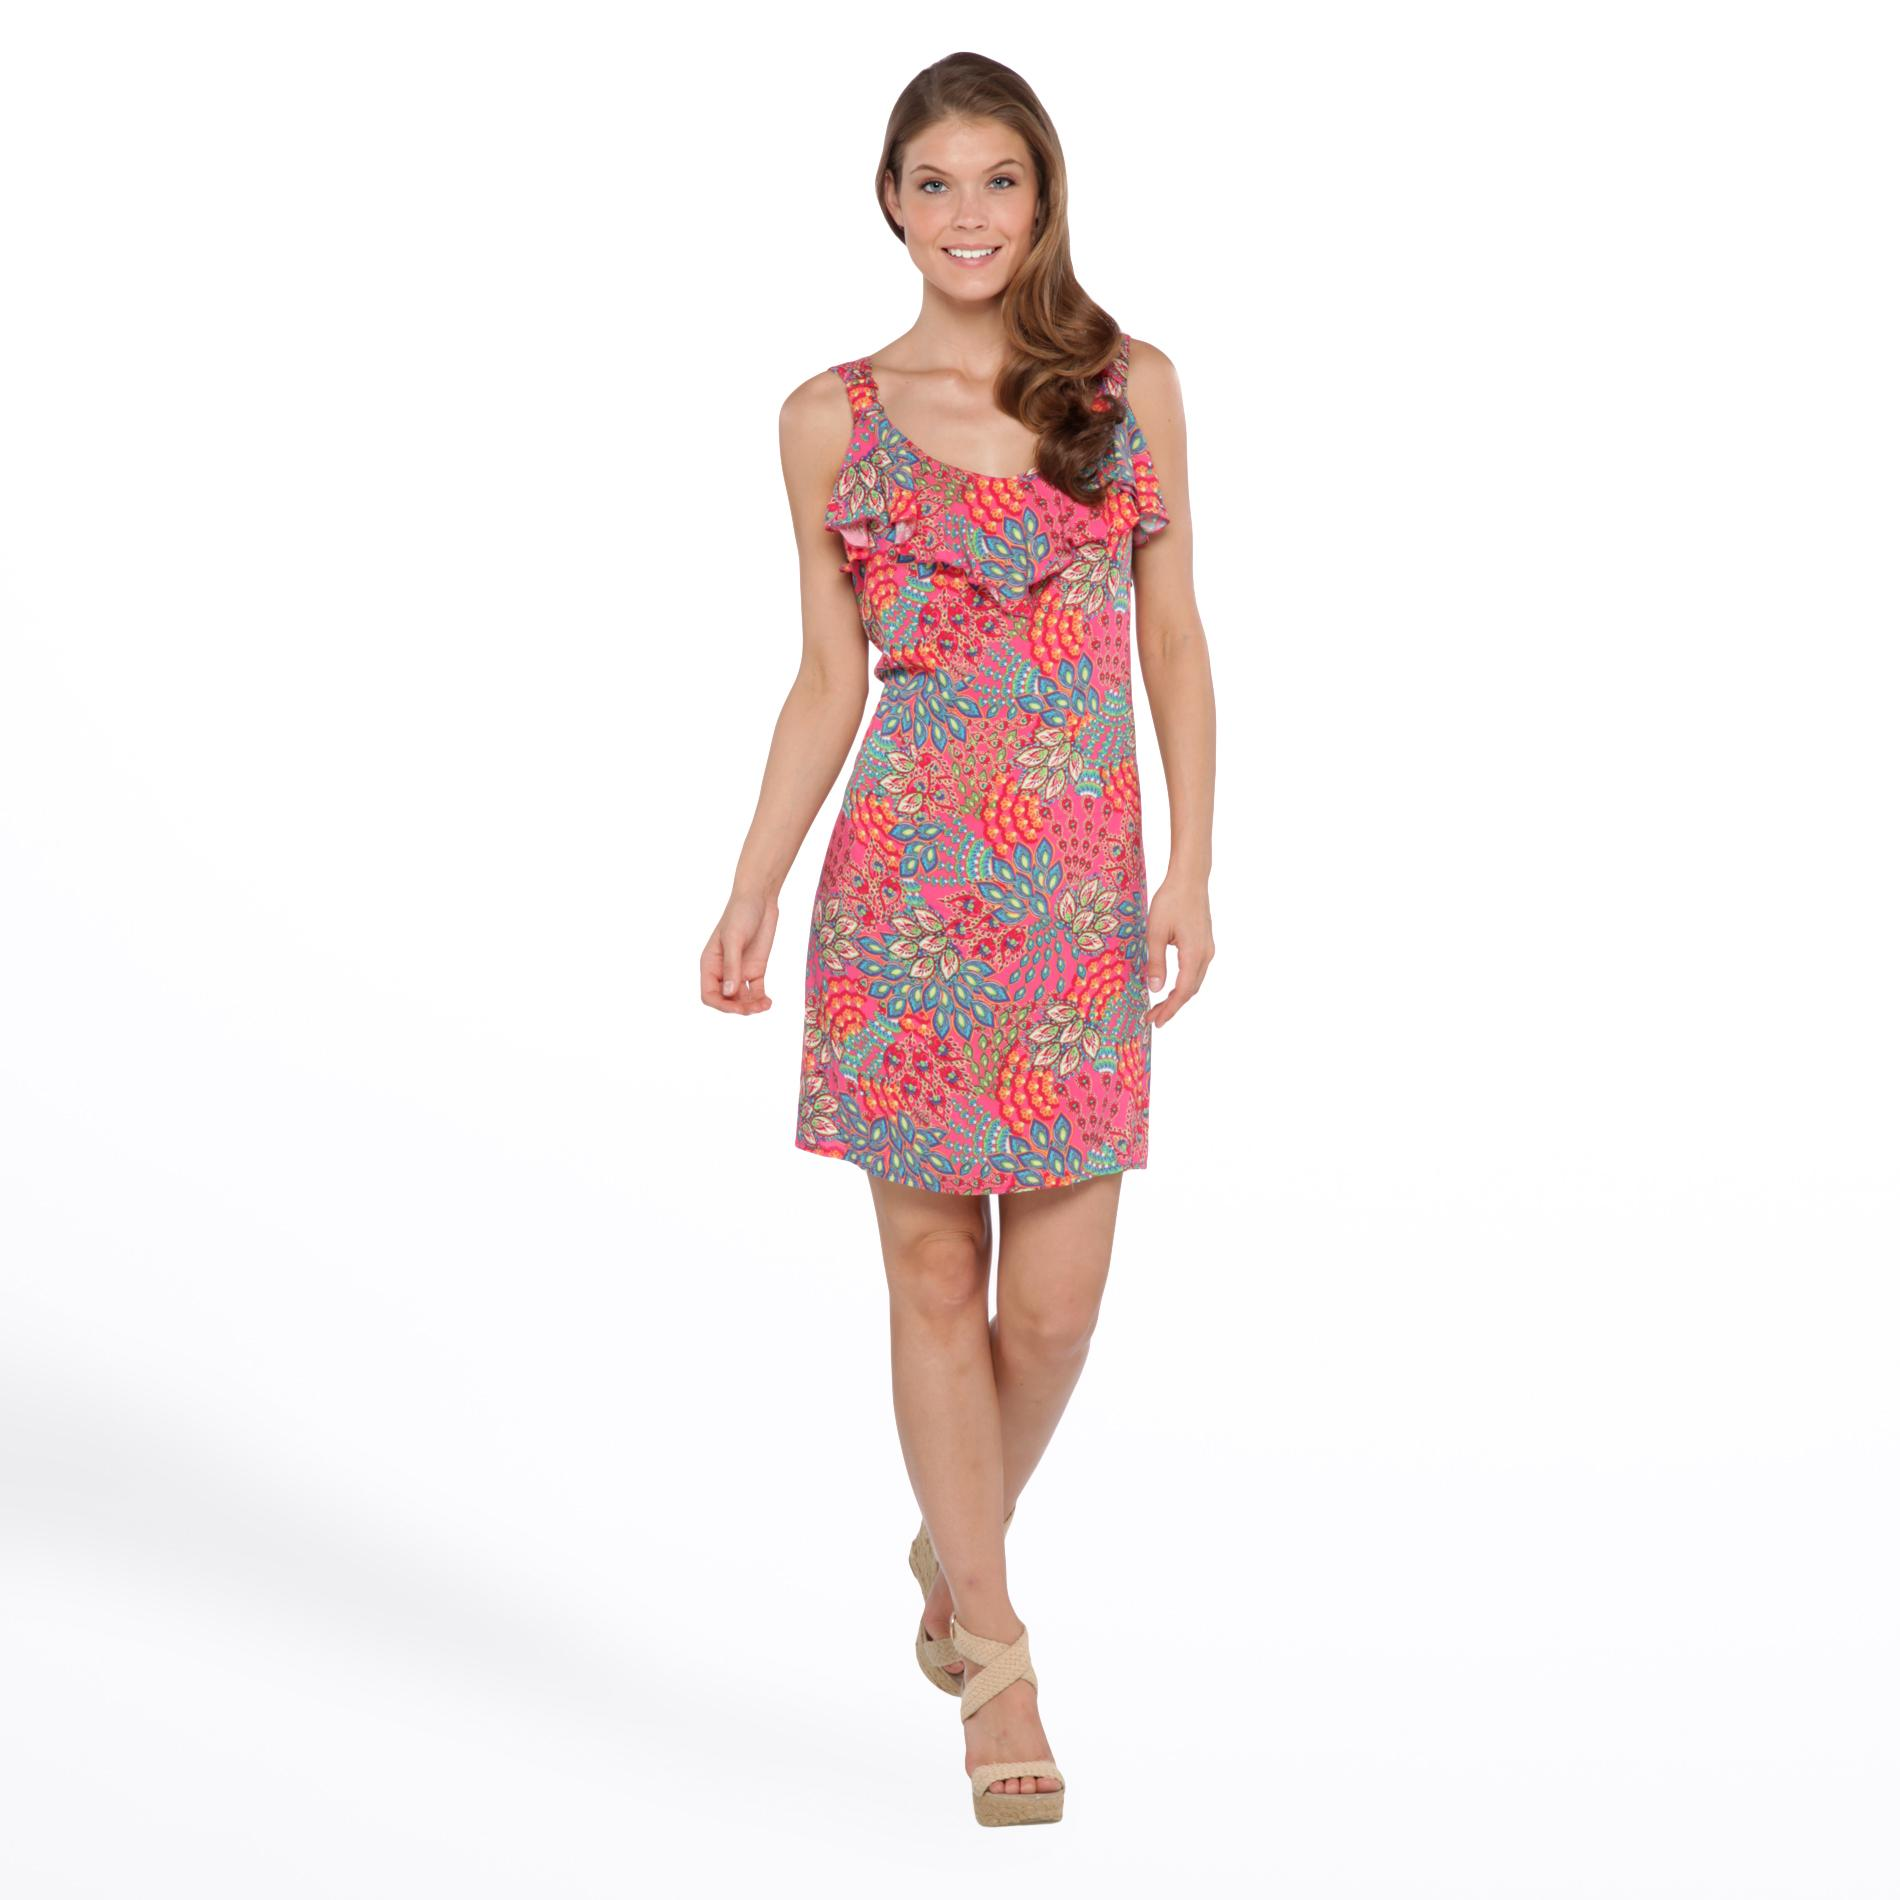 Tiana B Women's Sundress - Floral at Sears.com